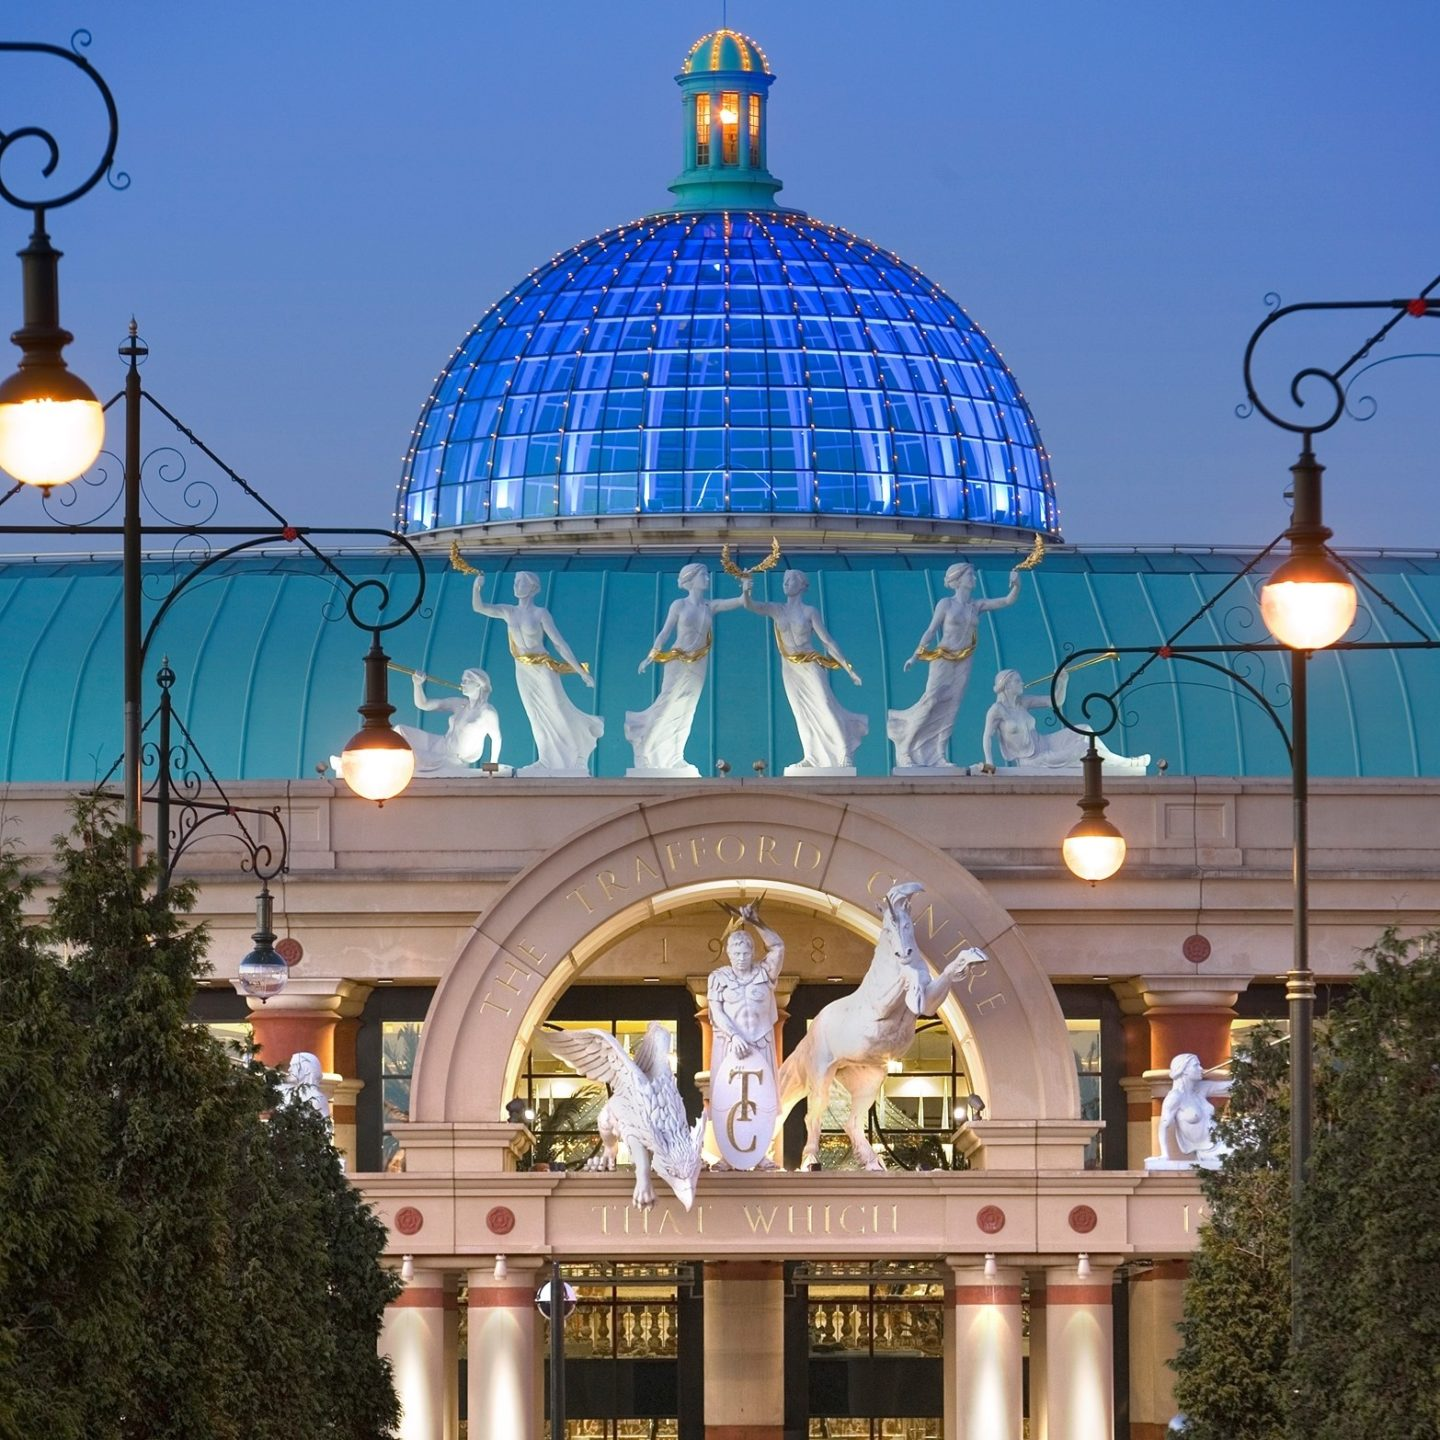 Things To Do in Manchester For Kids - The Trafford Centre